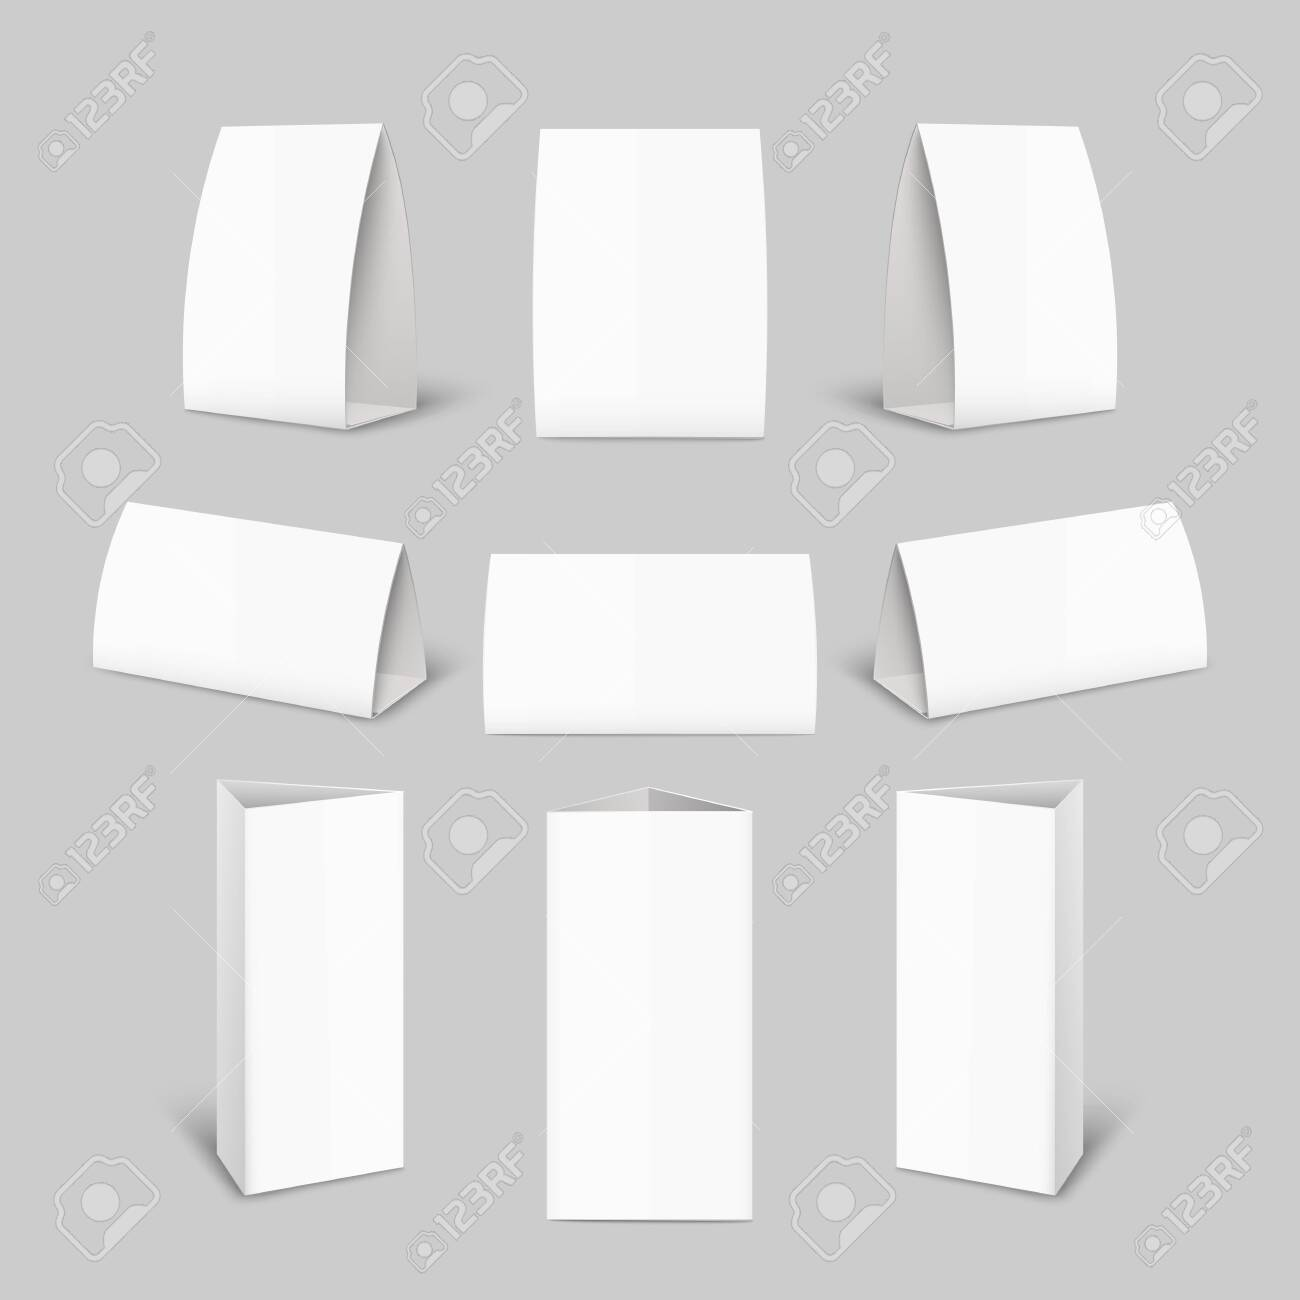 Tent card paper brochure mockup set - realistic blank advertising template collection from front and side view isolated on grey background, vector illustration - 129267154